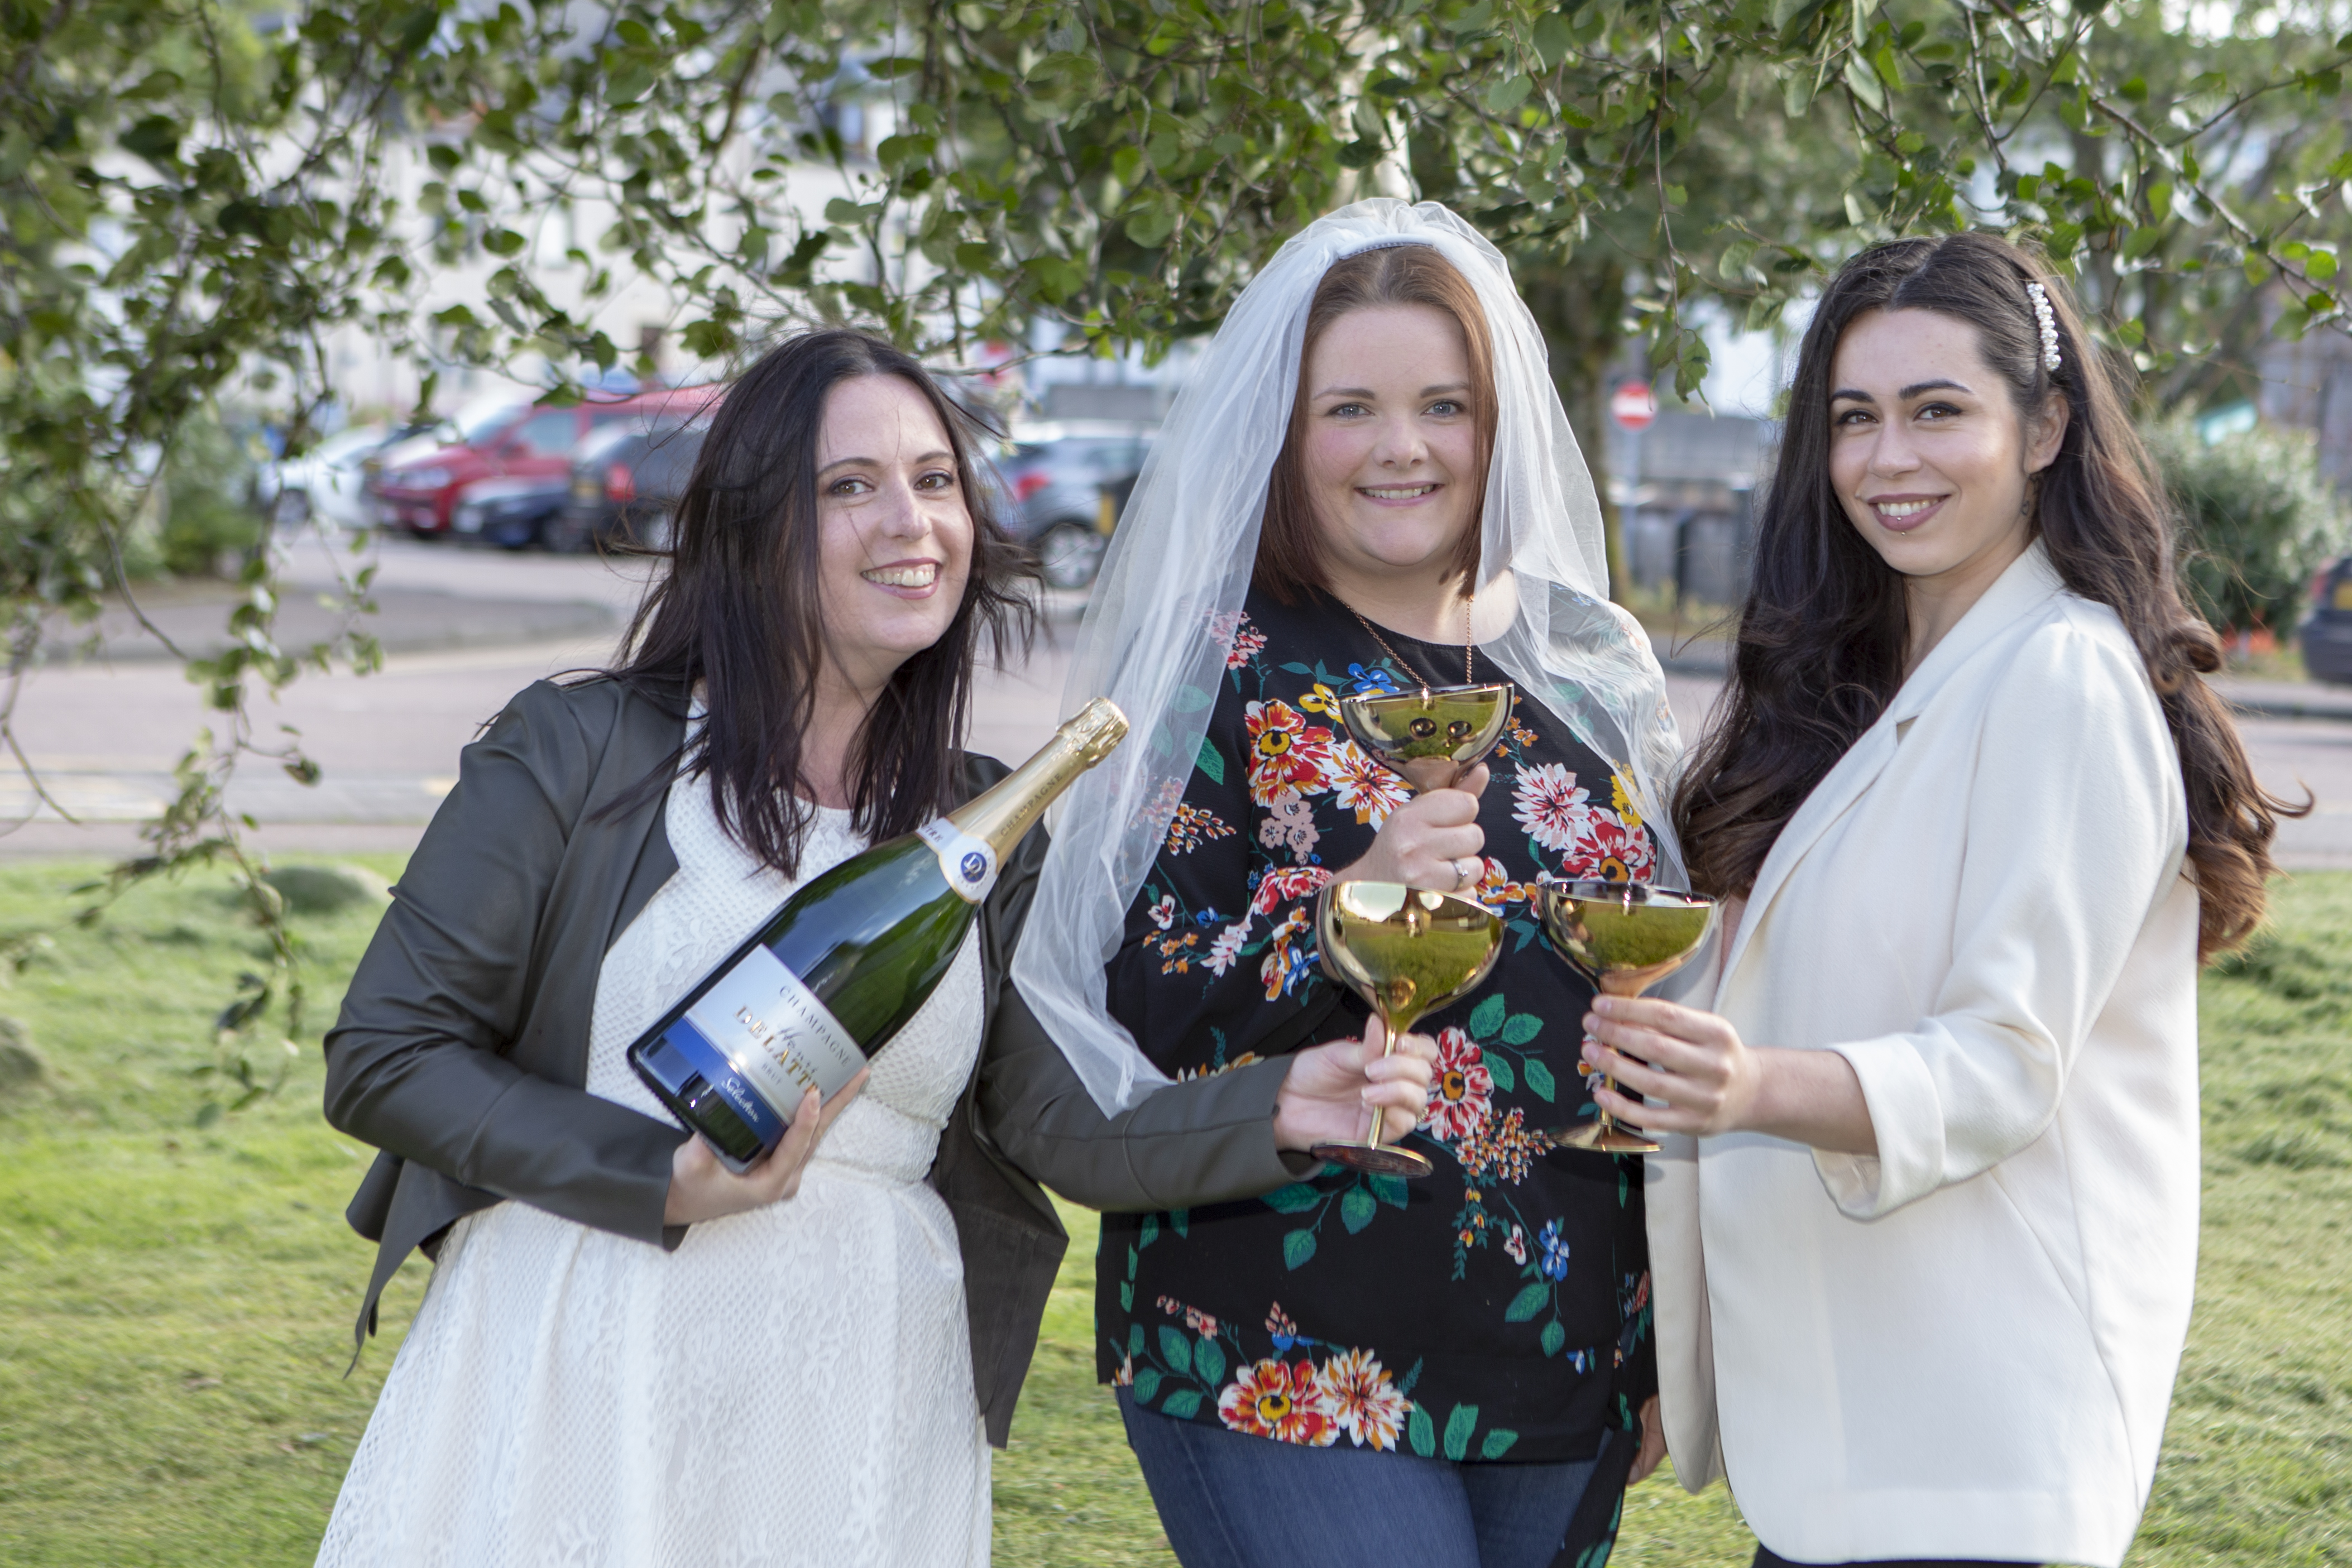 Daneil King, Michelle Purcell and Bonny Watkins launch their Wedding Dress Charity Ball. Kim Ferguson/The Write Image